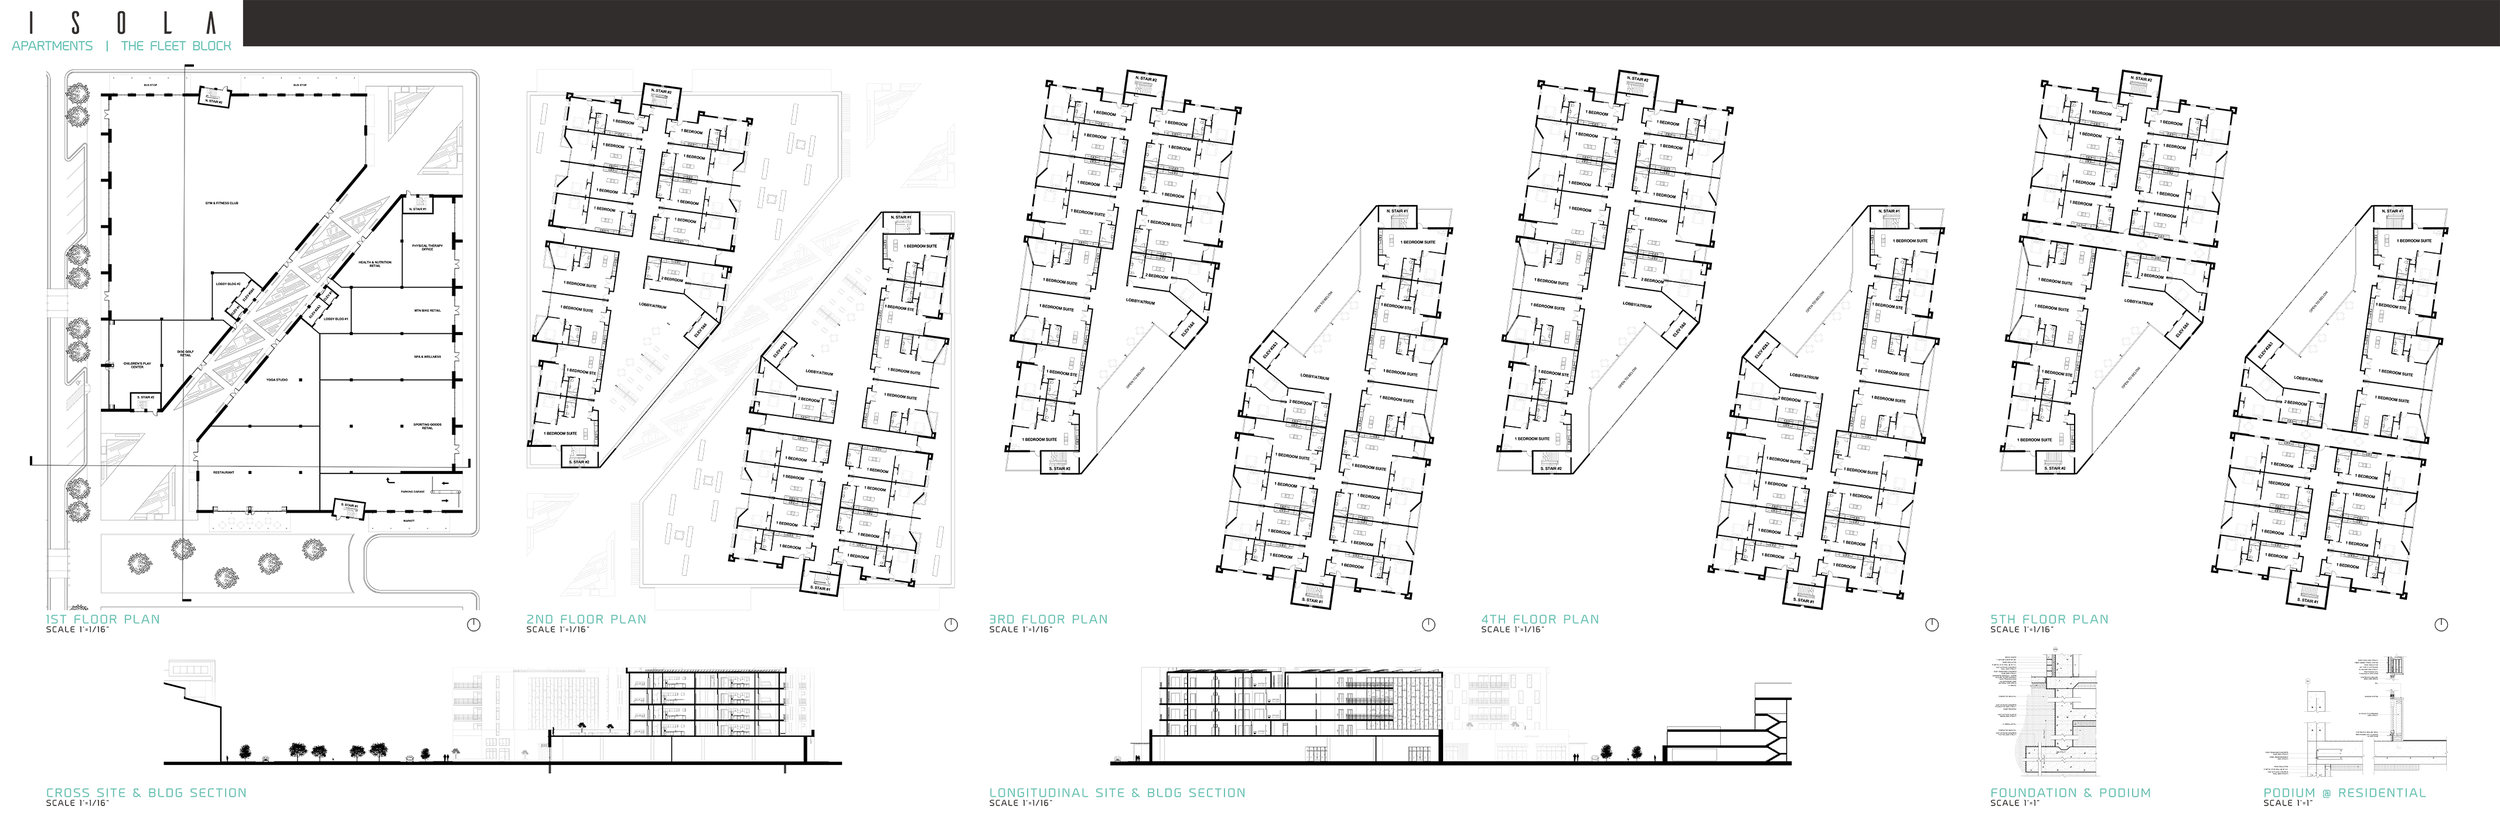 ISOLA APARTMENTS PLANS _ SECTIONS.jpg